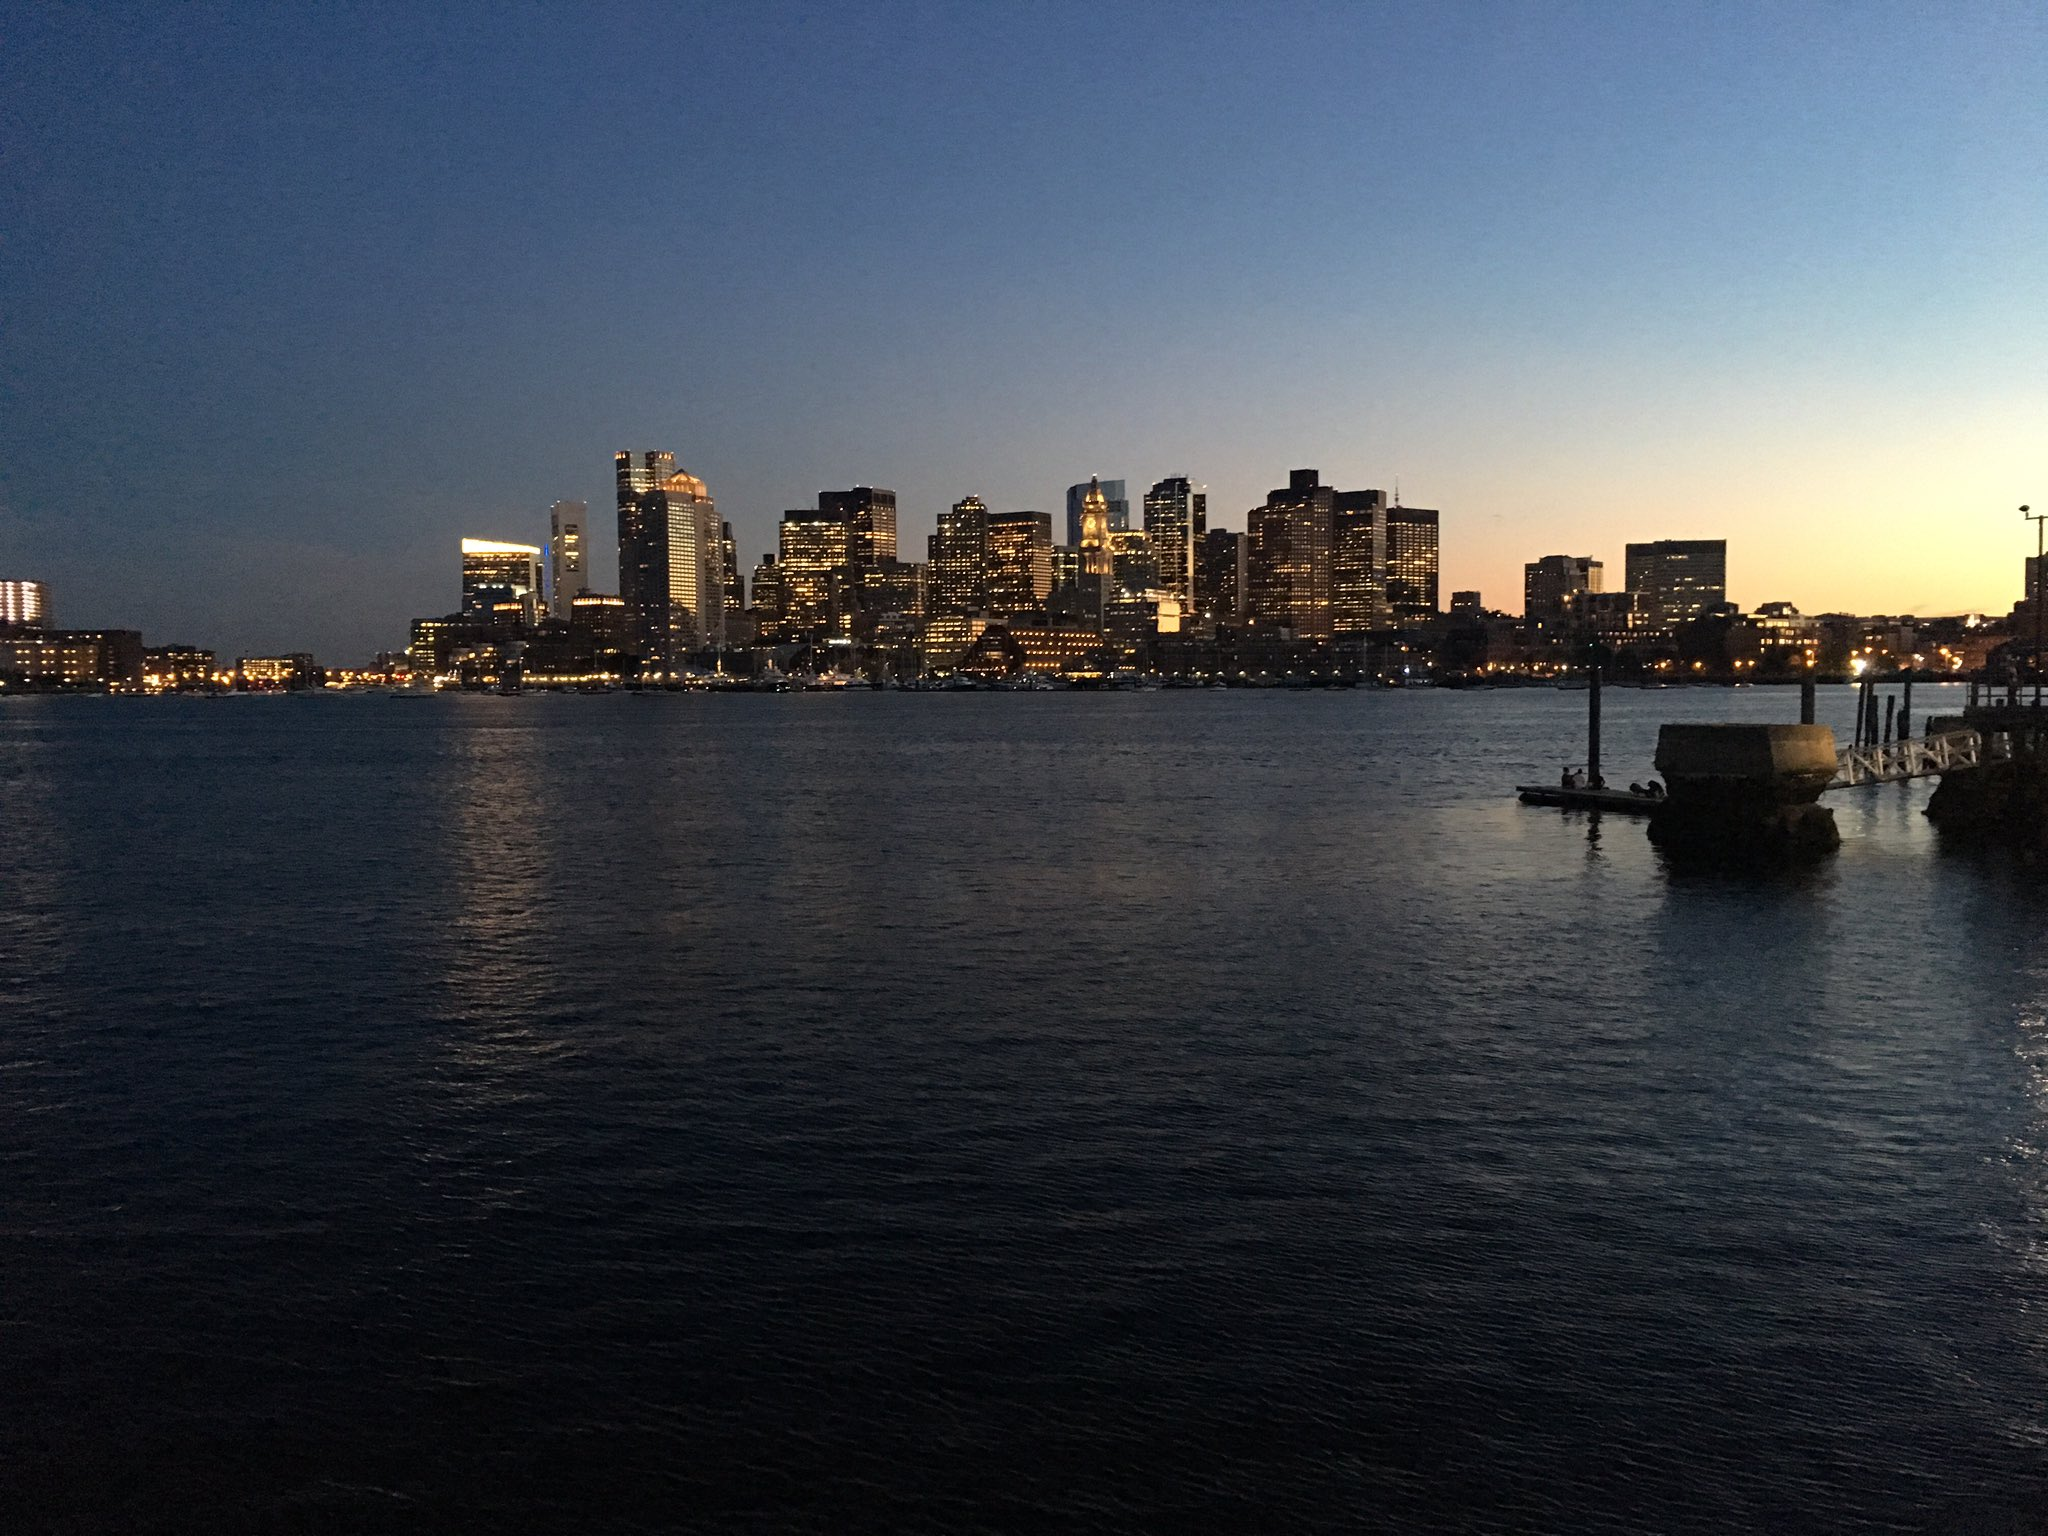 An absolutely beautiful night at Piers Park in East Boston...the view isn't too bad either. https://t.co/ZXnZIMxbPU